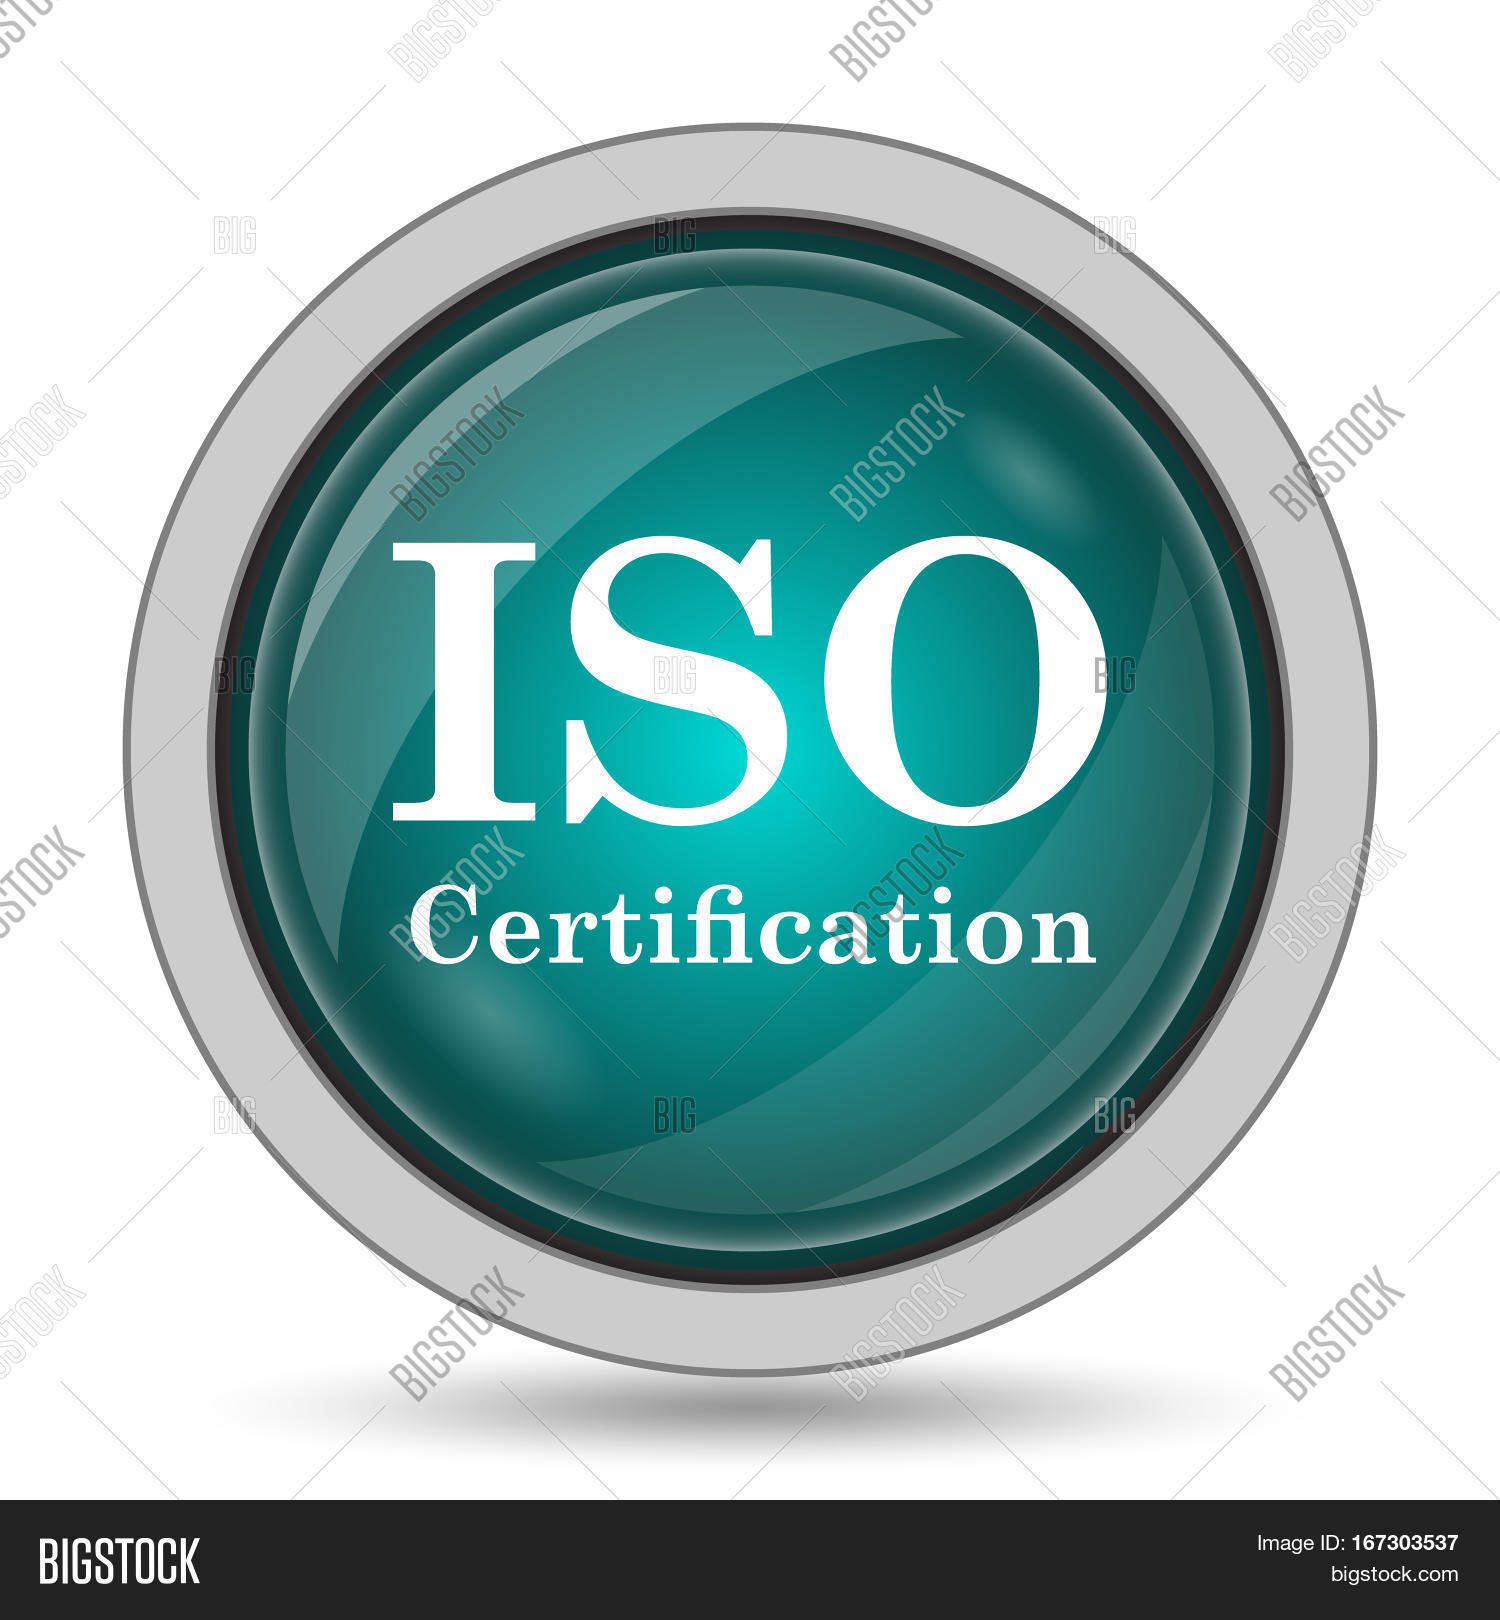 Iso Certification Icon Image Photo Free Trial Bigstock